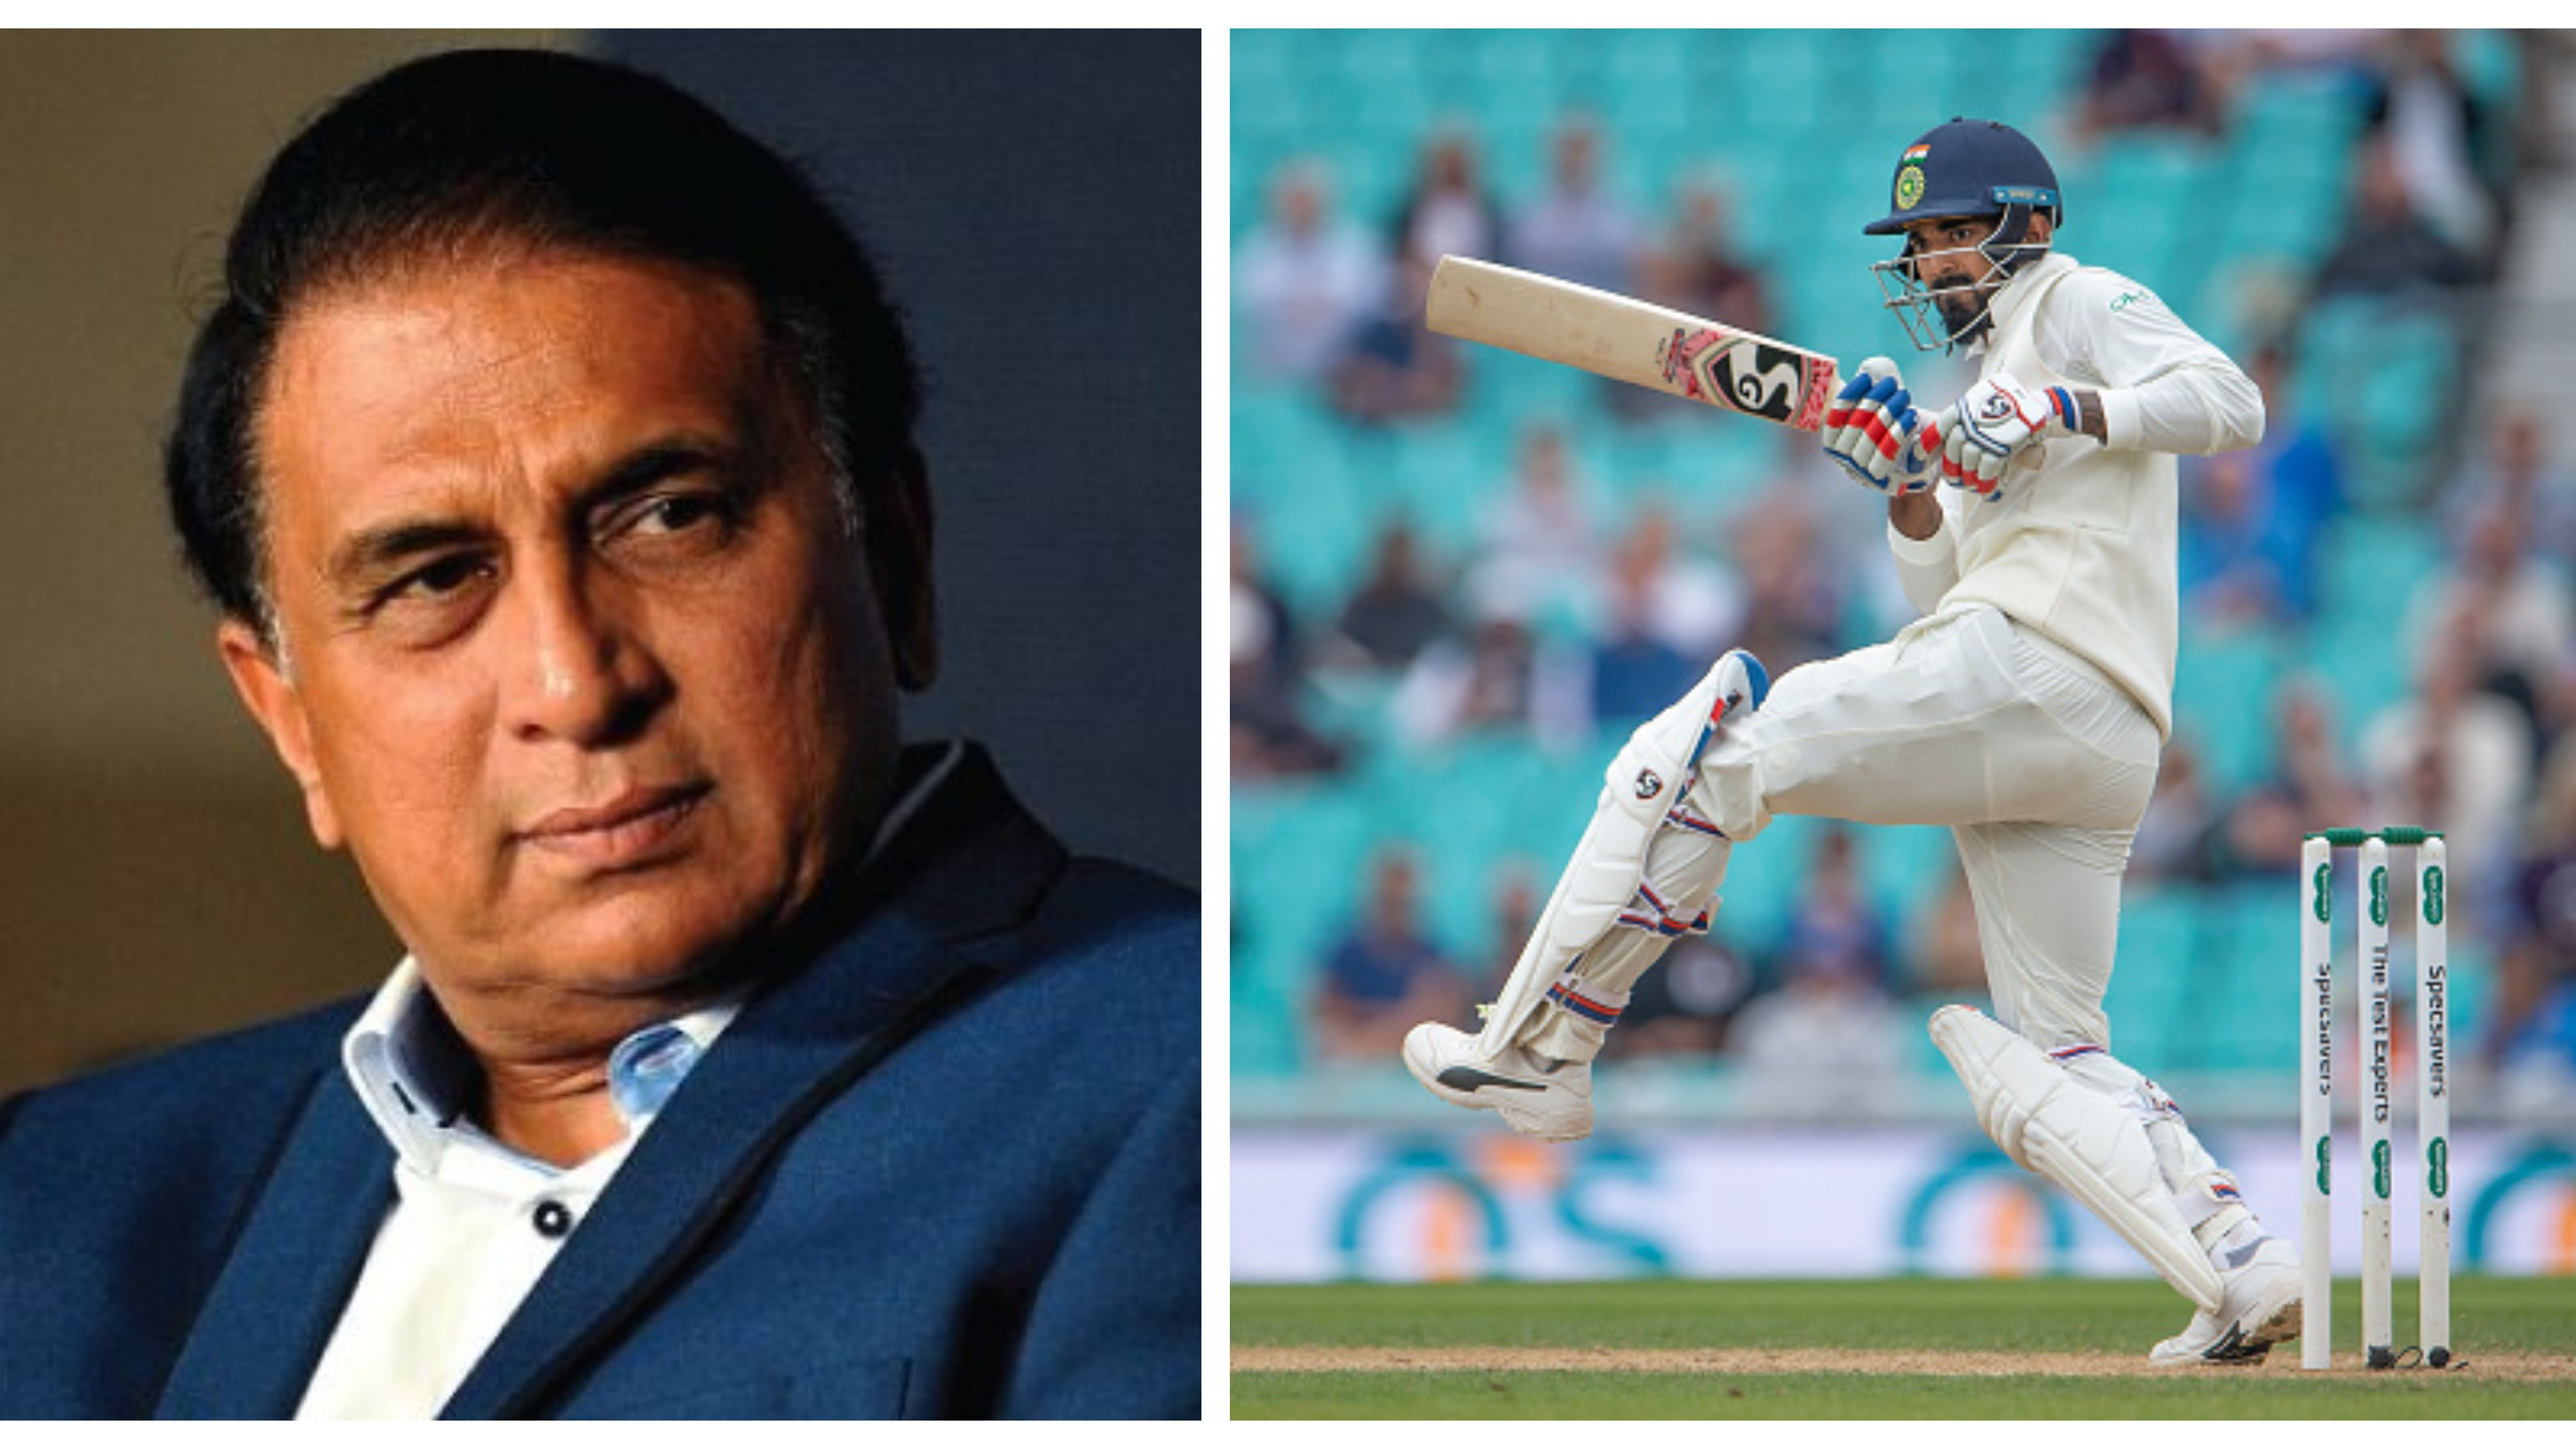 AUS v IND 2018-19: Sunil Gavaskar feels KL Rahul is trying to hit his way out of the bad patch